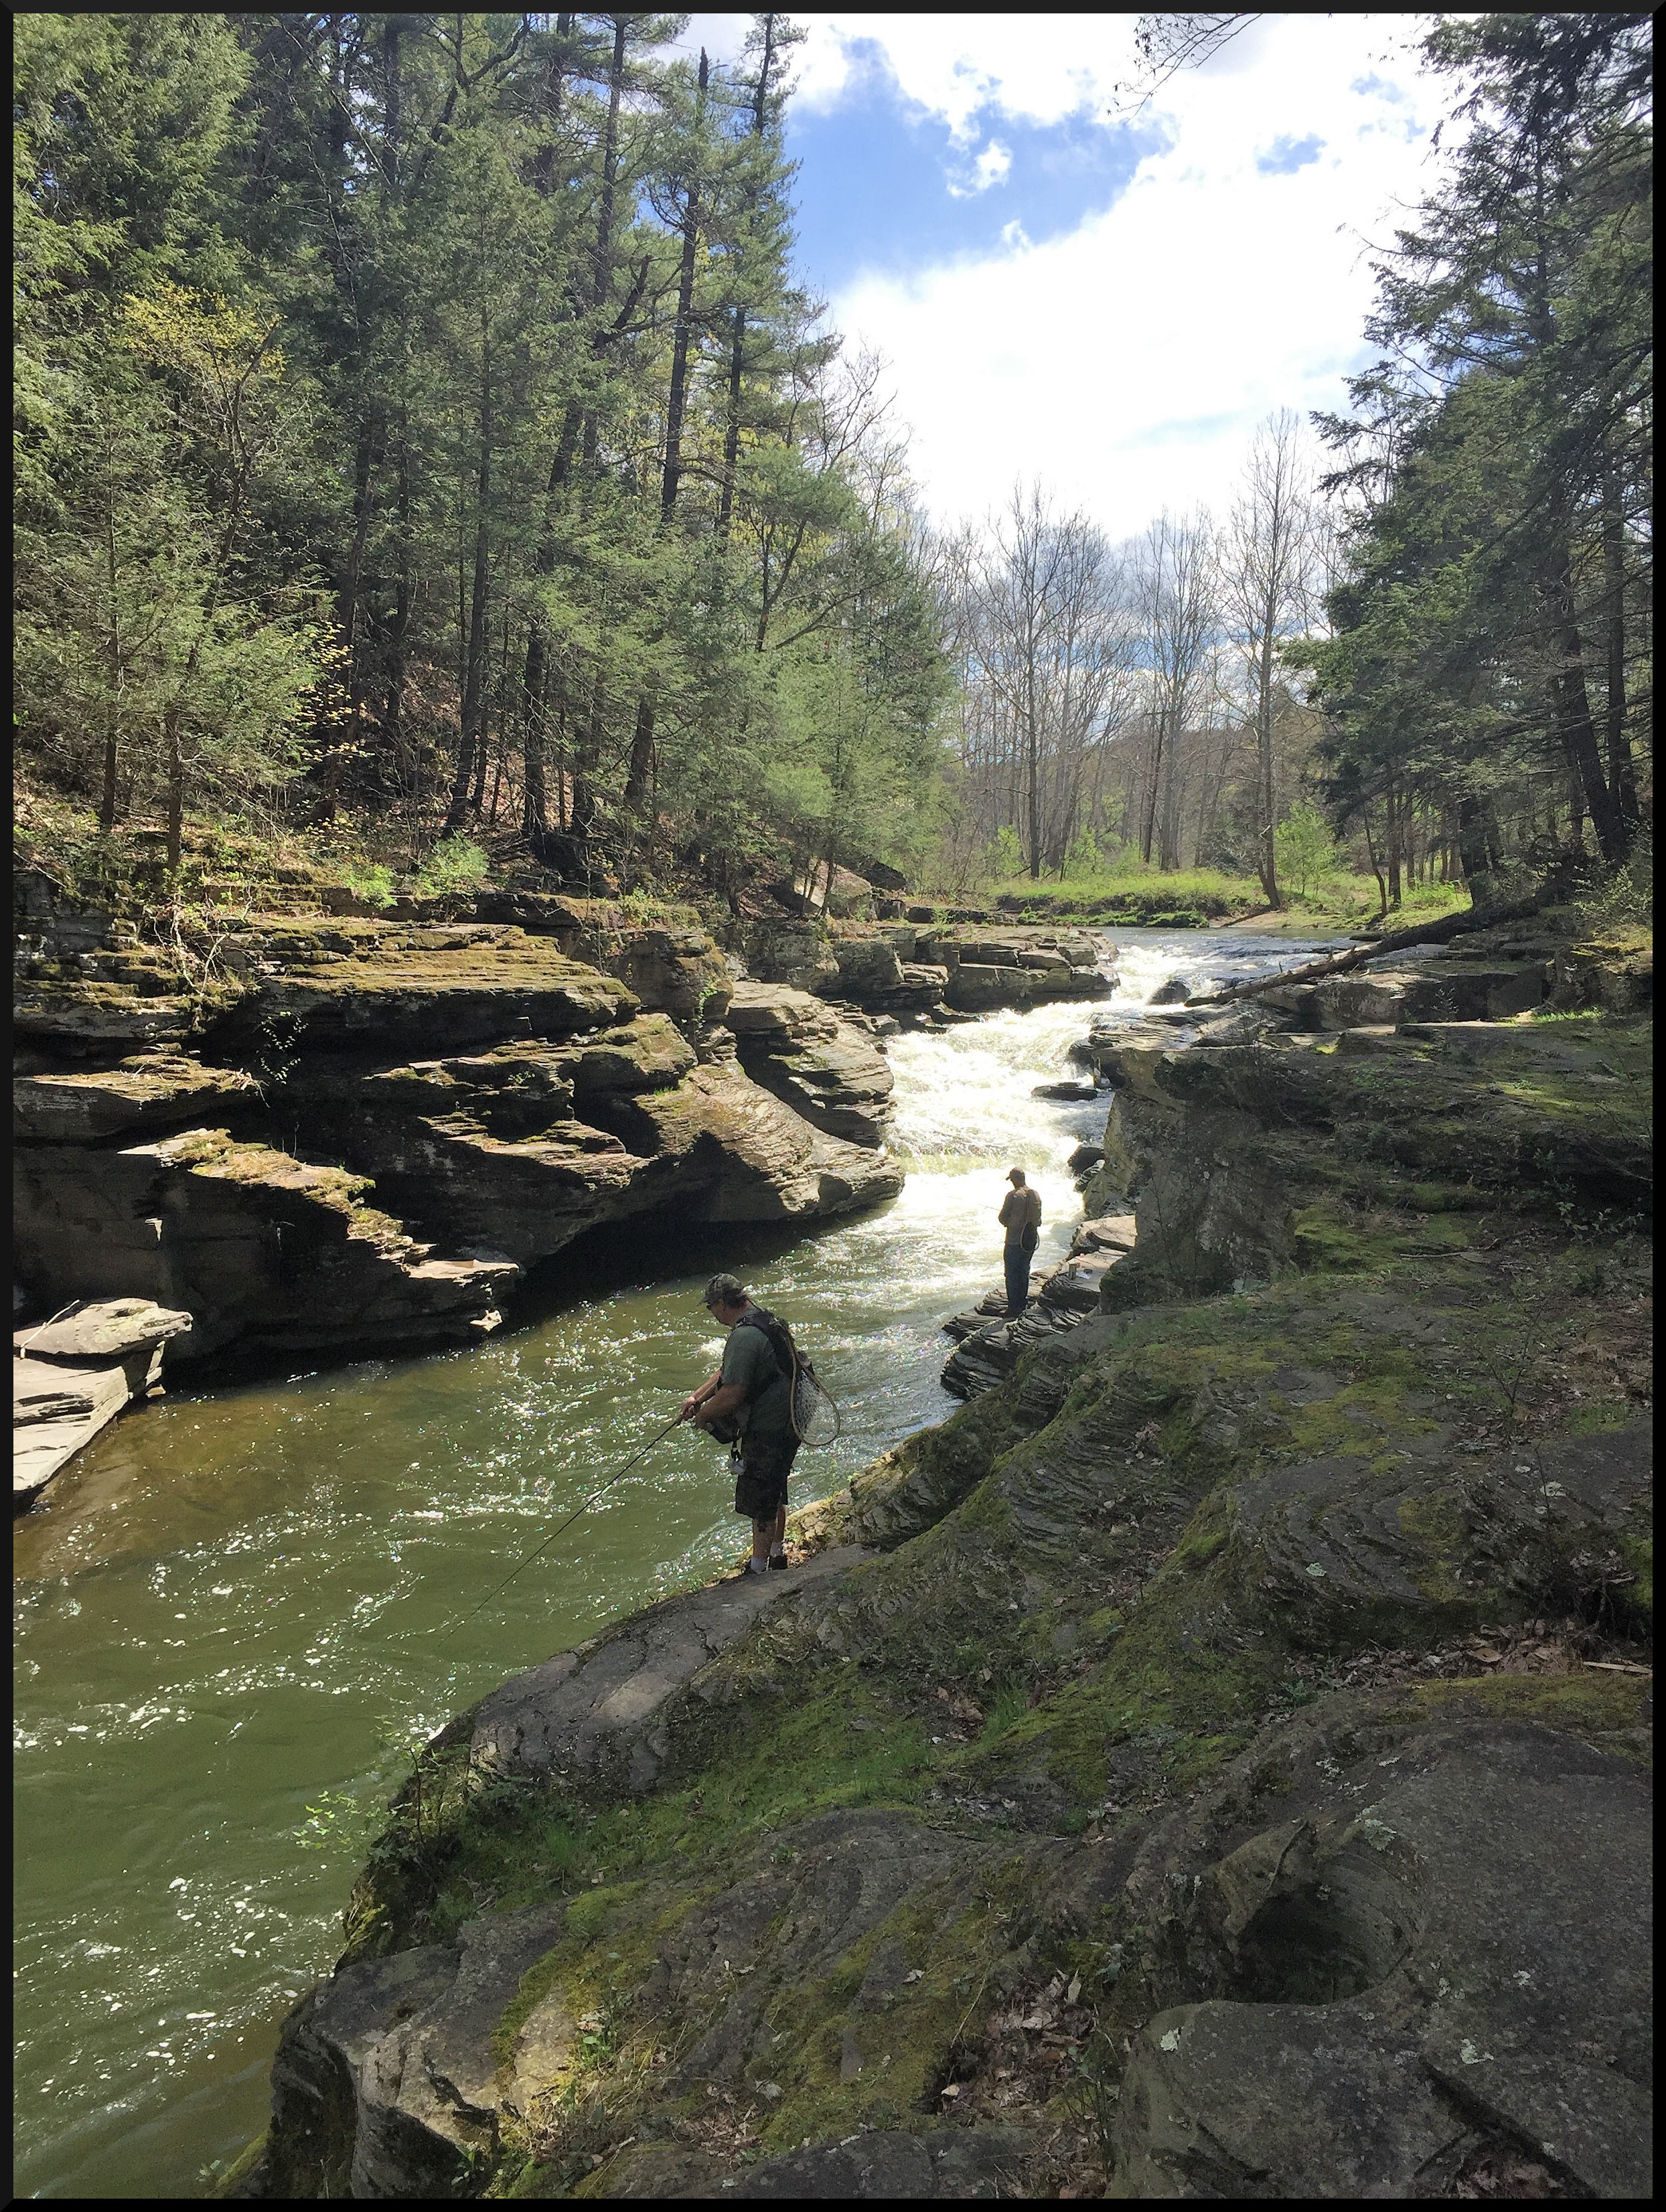 Fishing on the Meshoppen Creek in Susquehanna County, Pennsylvania